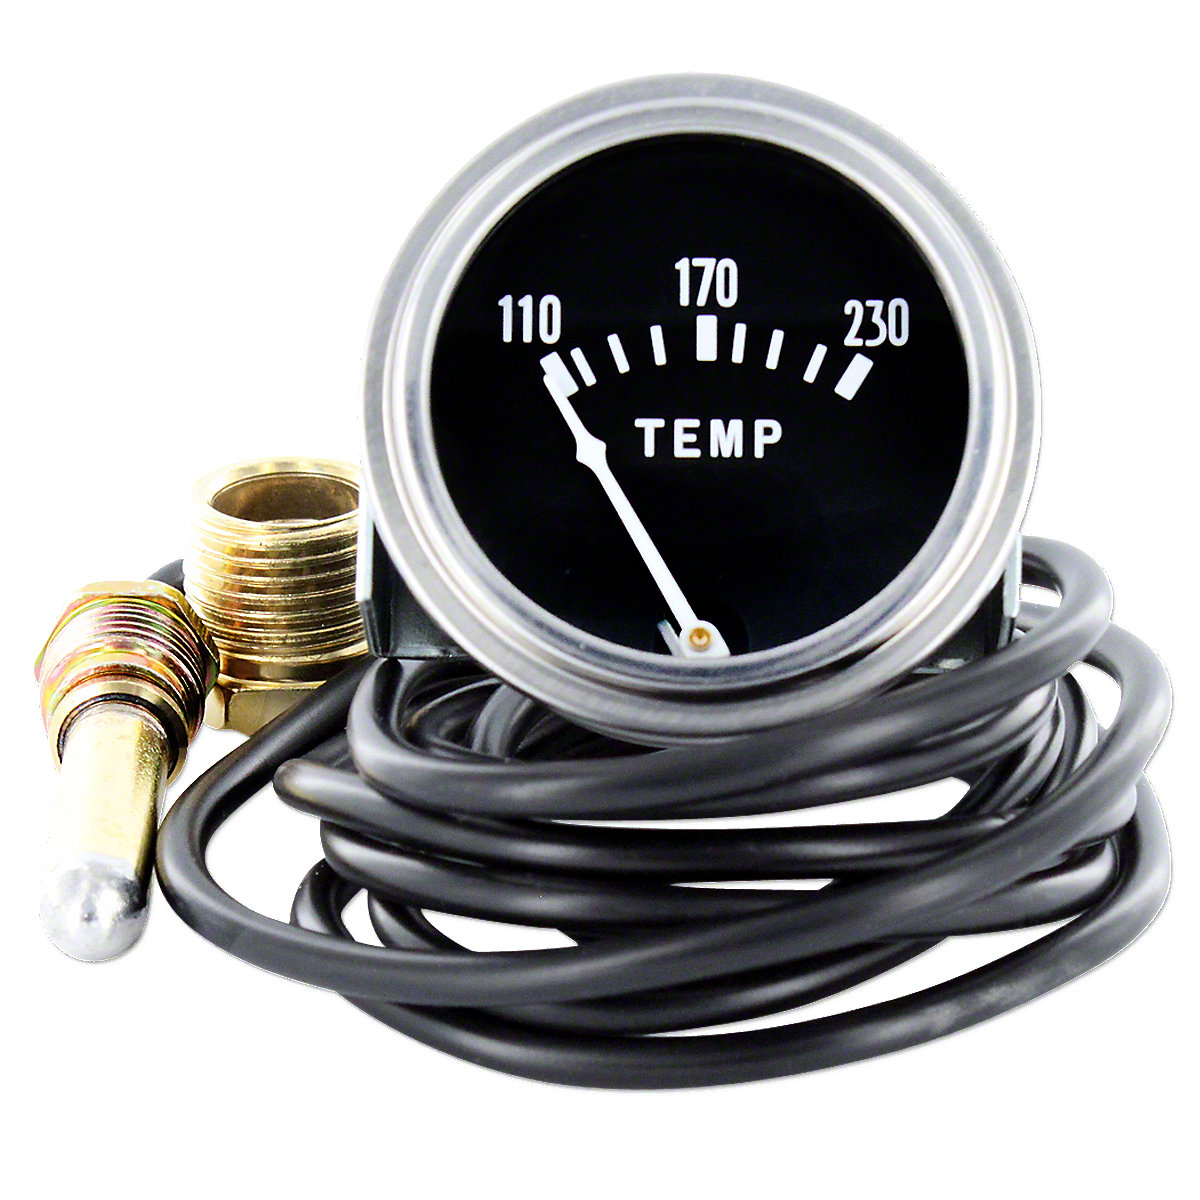 Water Temperature Gauge For Massey Ferguson: 35, 50, 65, 85, 88, 135, 150, 165, 175, 180, Super 90, 40, TO35, Massey Harris:  Colt 21, I-162, I-244, I-330, Mustang 23, Pacer 16, 101 Jr, 101 Sr, 102 Jr, 102 Sr, 20, 22, 30, 33, 44, 50, 55, 81, 82, 201, 202,